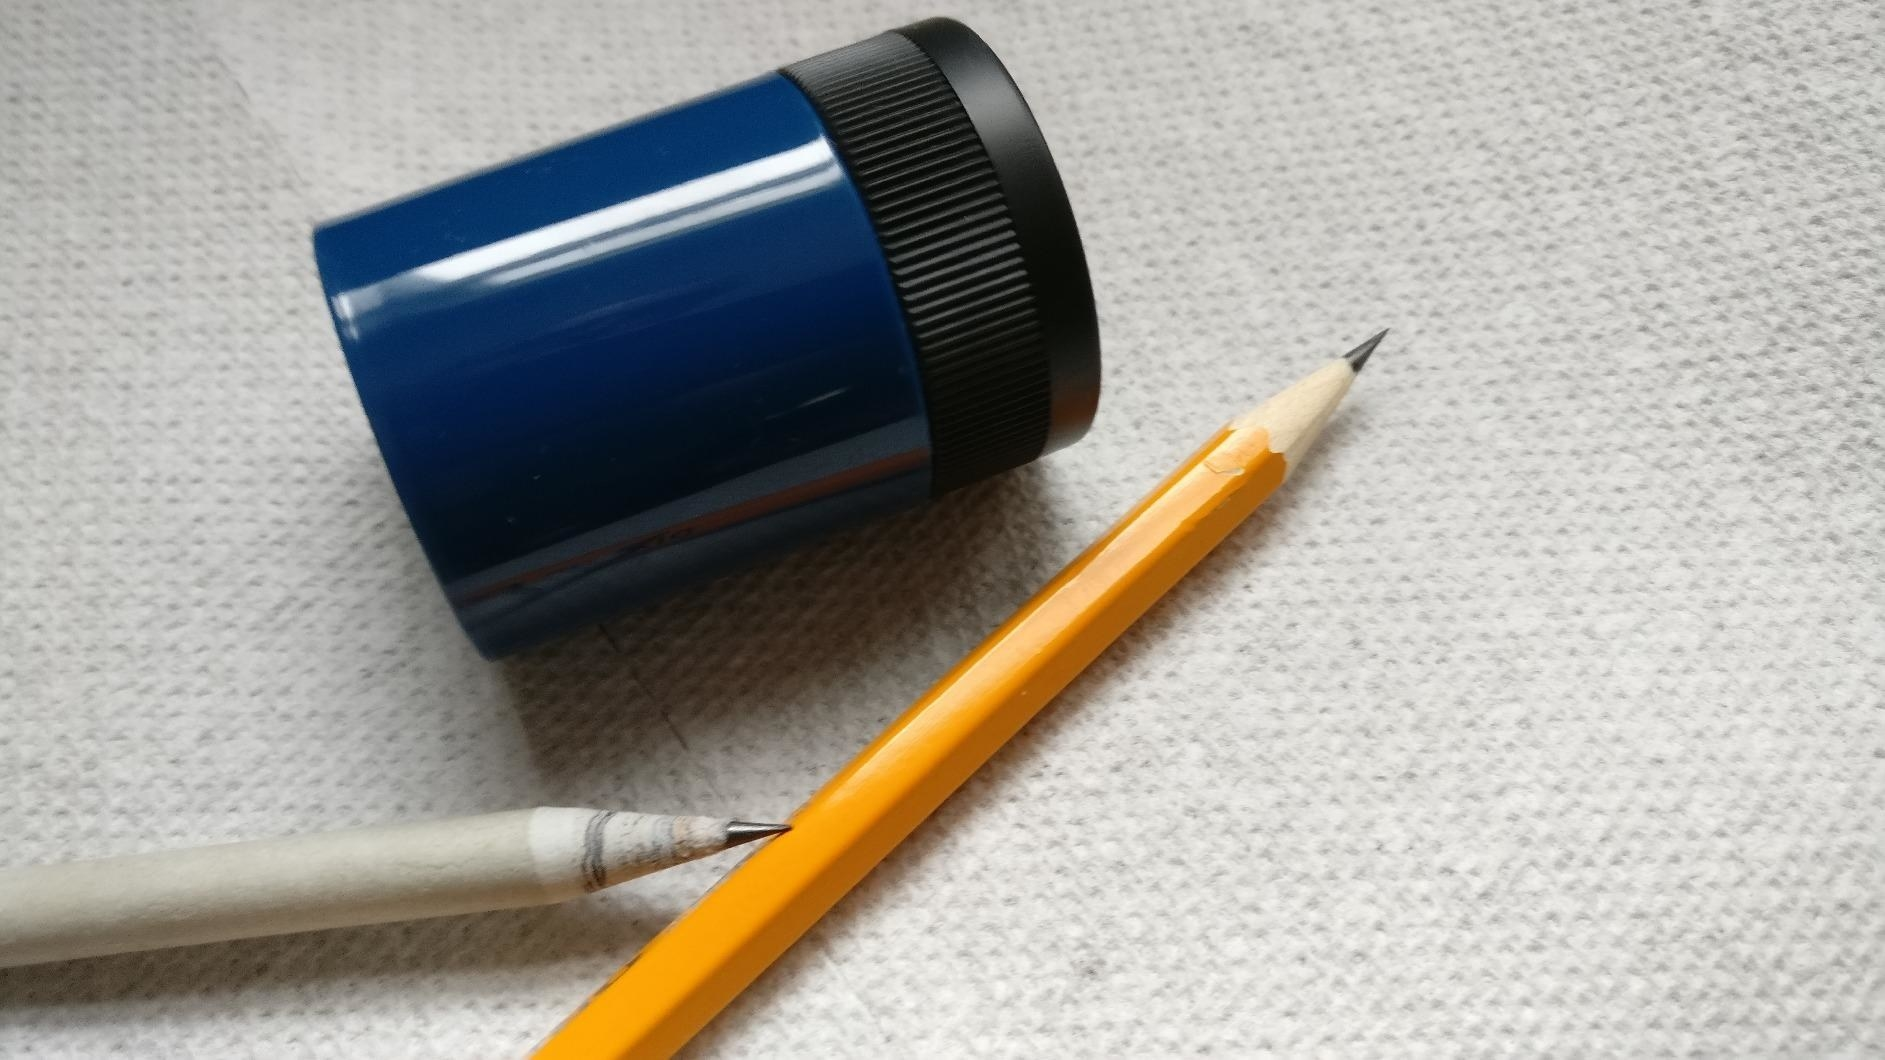 A blue plastic pencil sharpner with a black top next to some sharpened pencilse